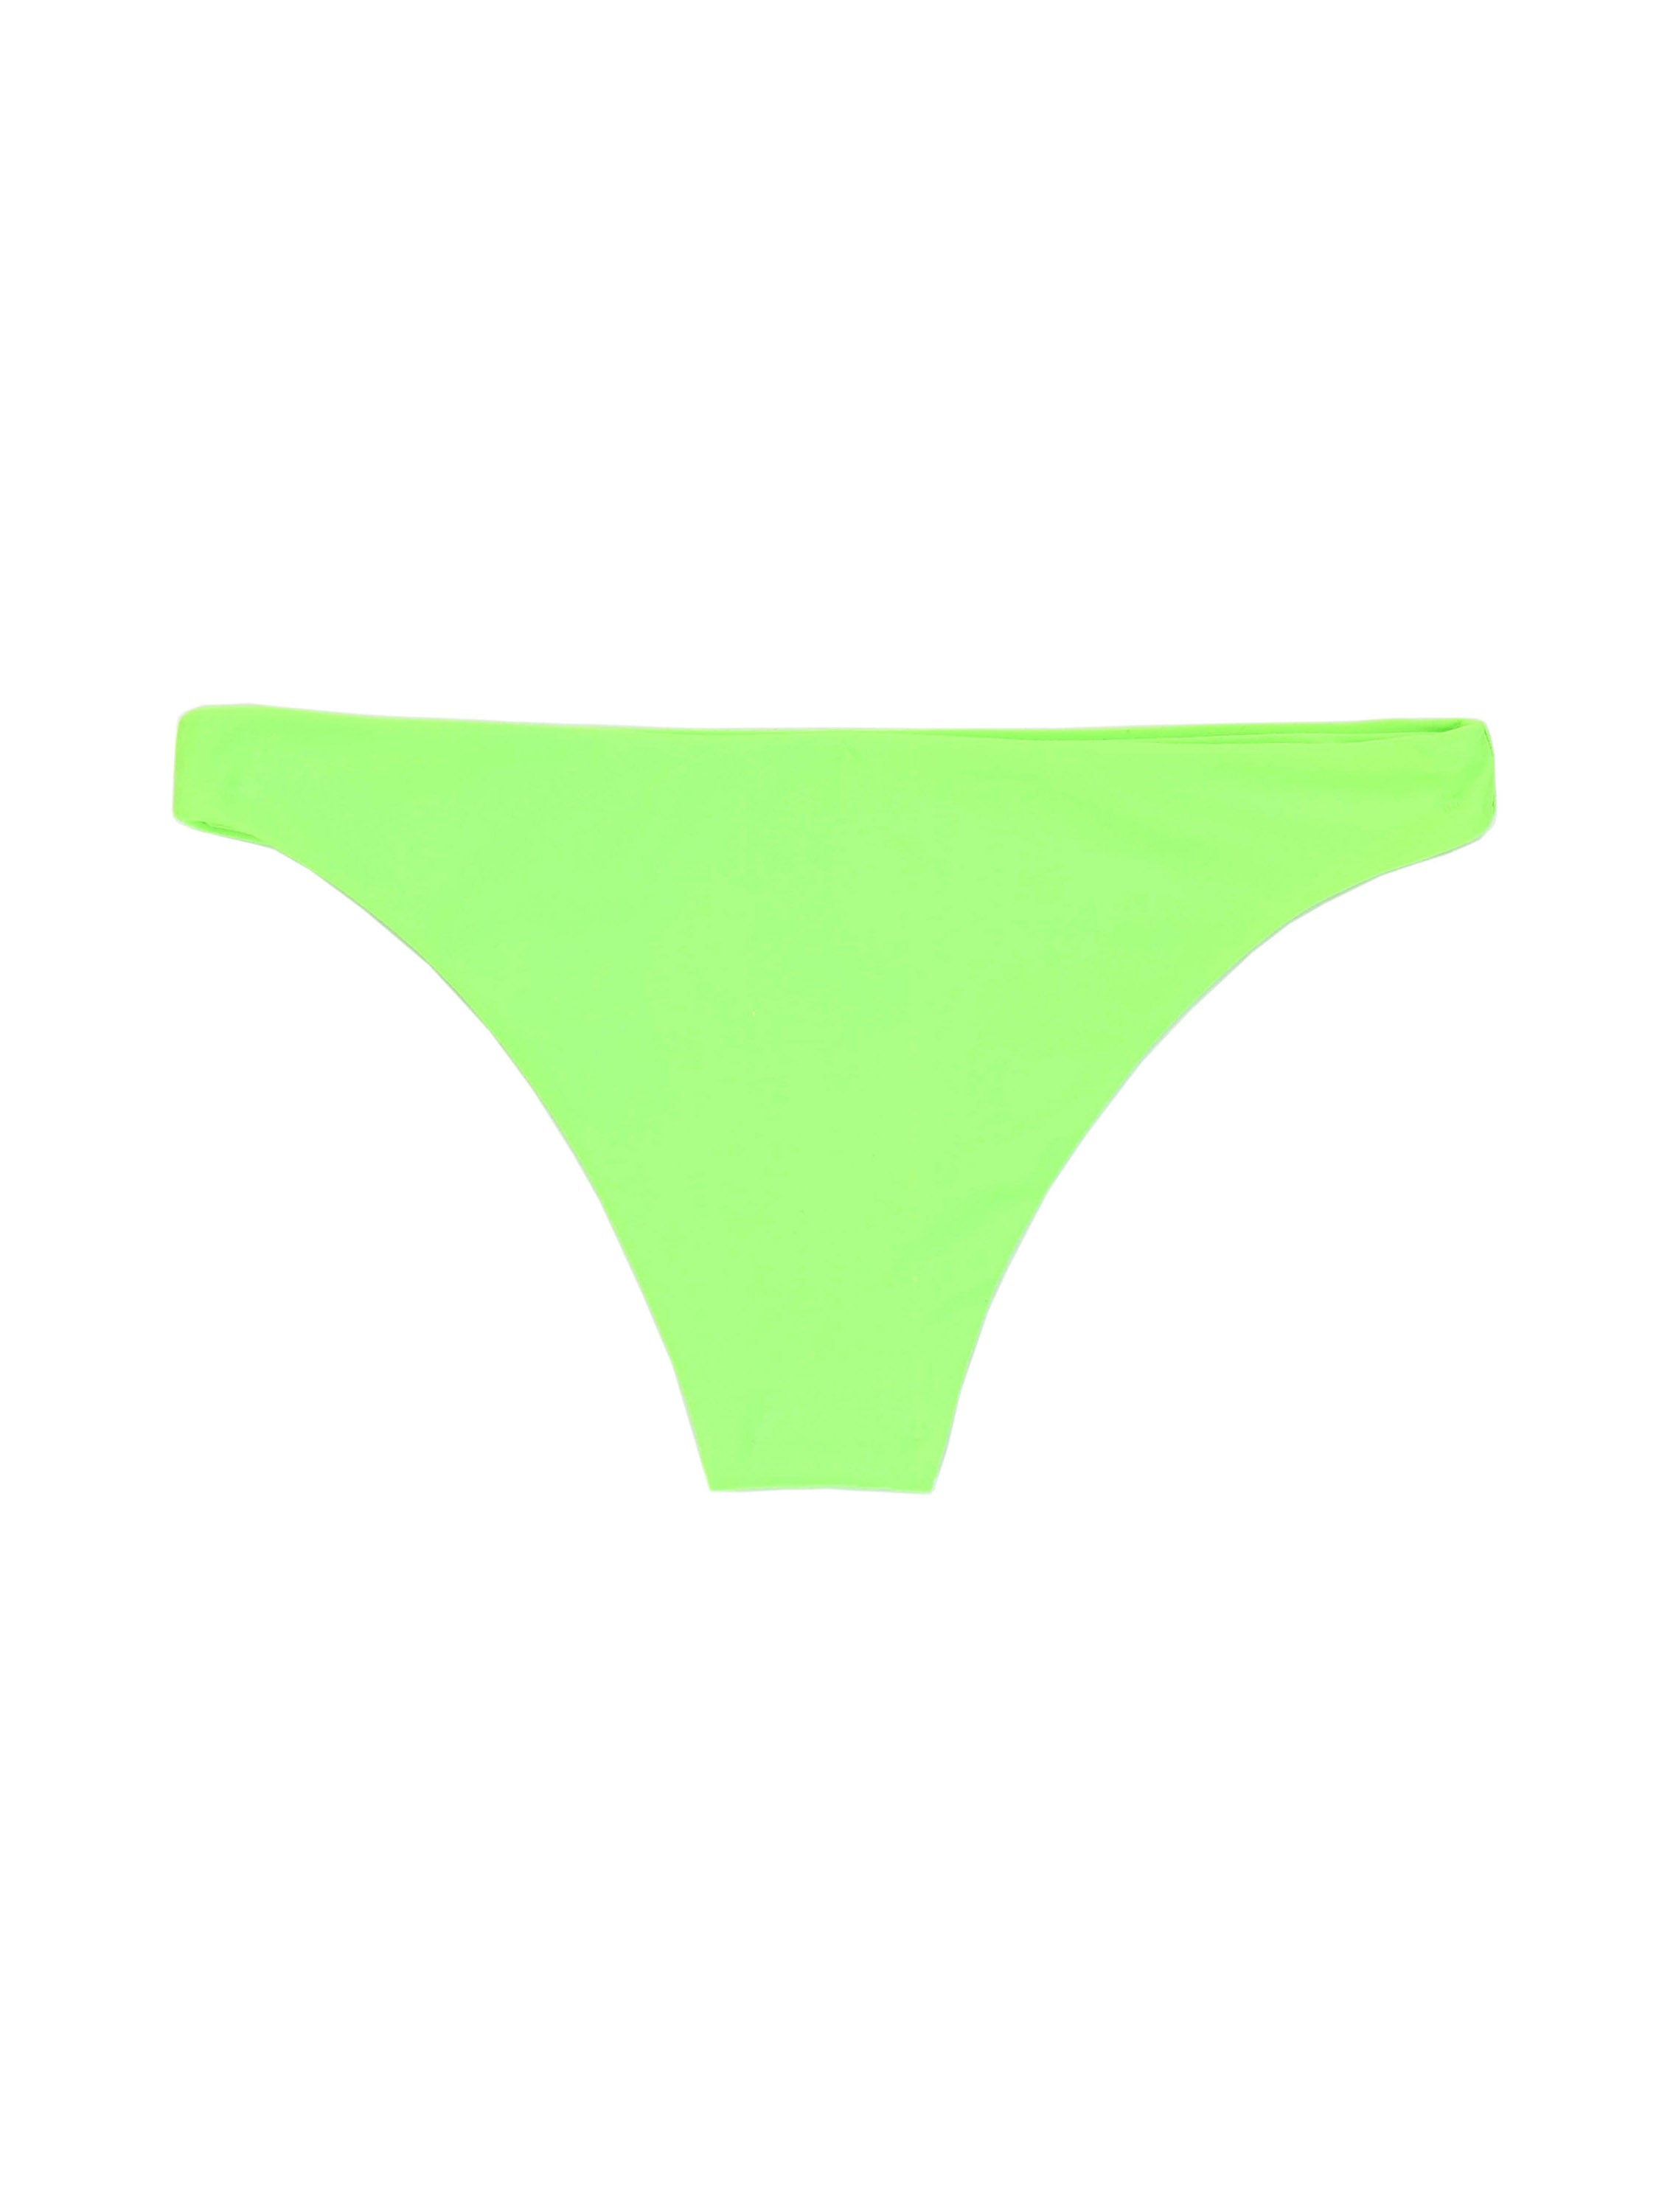 Brief Bottom (Neon Green)